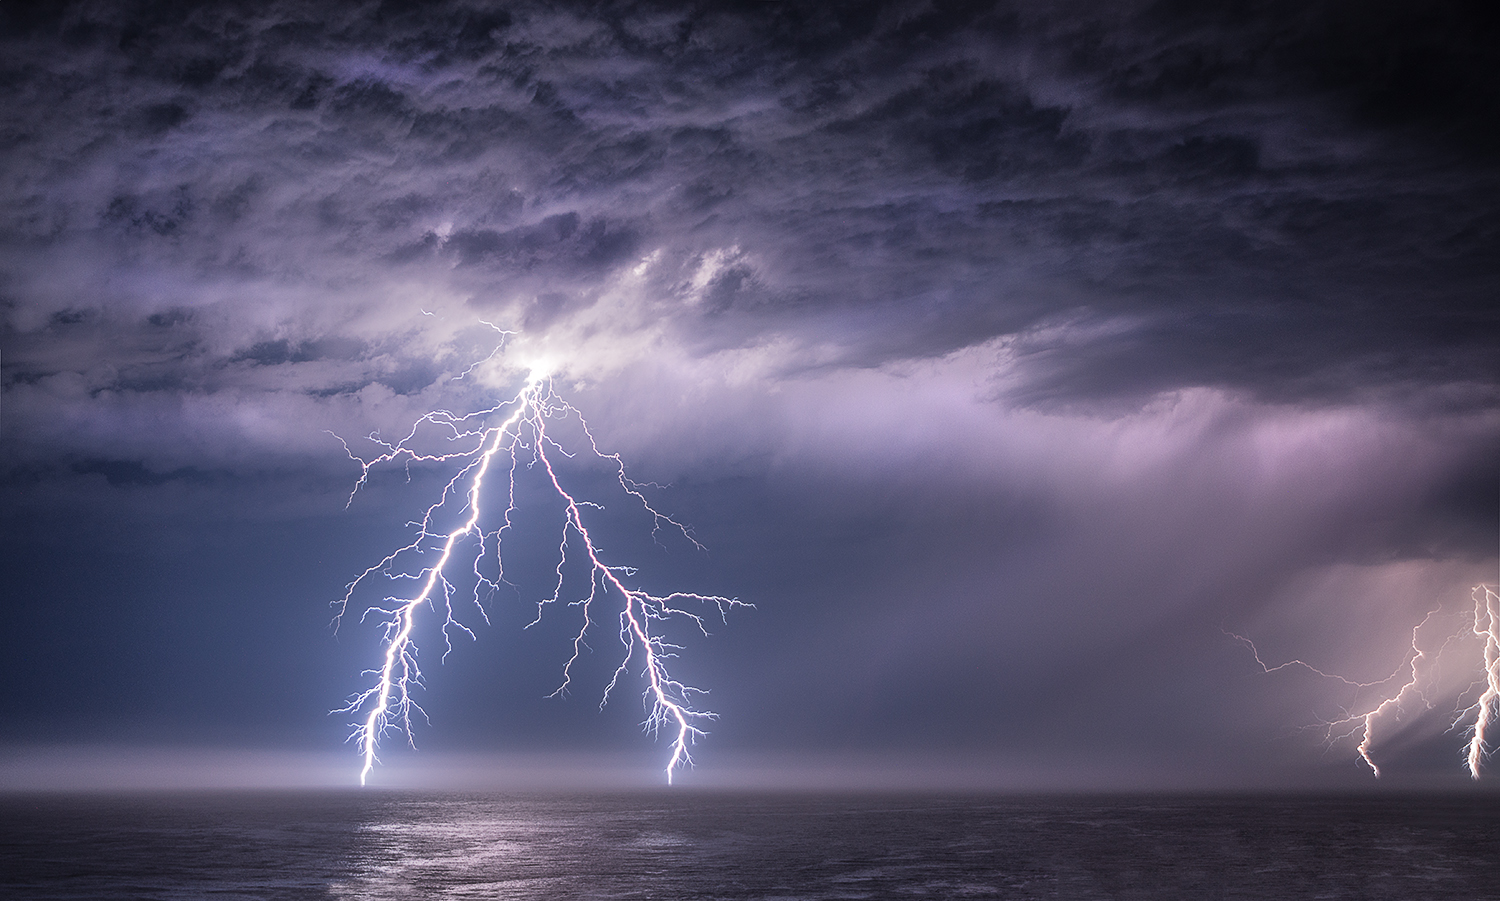 There Was Spectacular Lightning Storm Over The Pacific Ocean Early This Morning